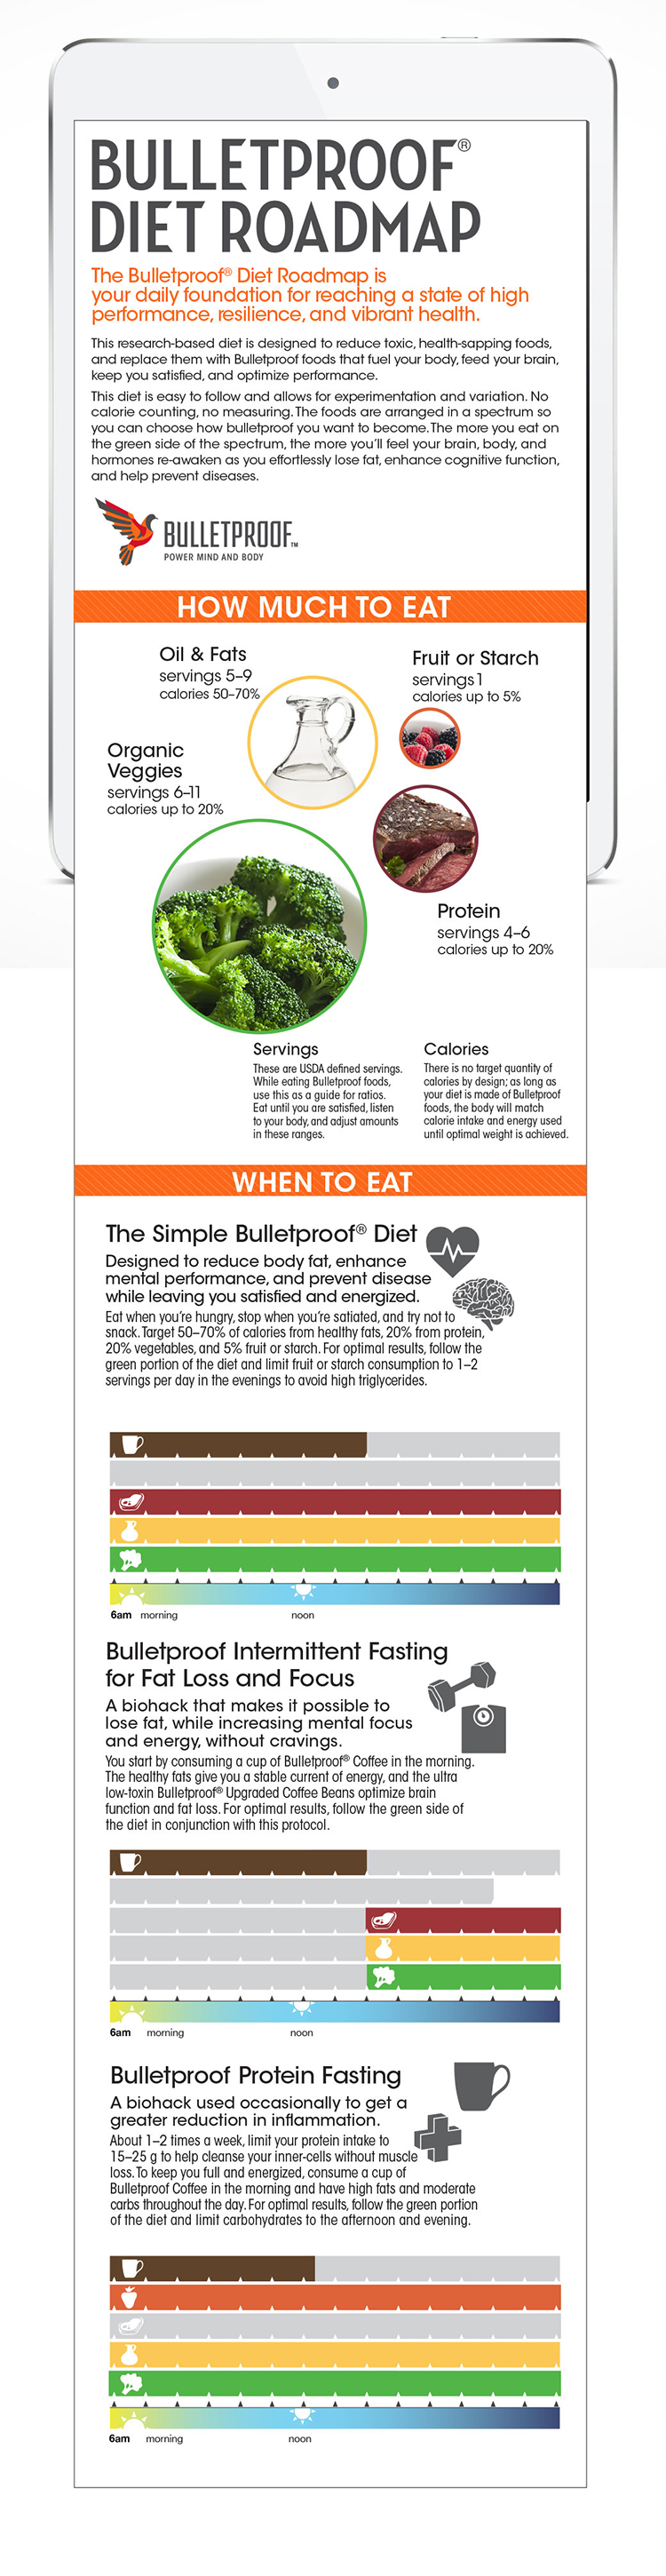 Bulletproof Diet Roadmap infographic for mobile and social media